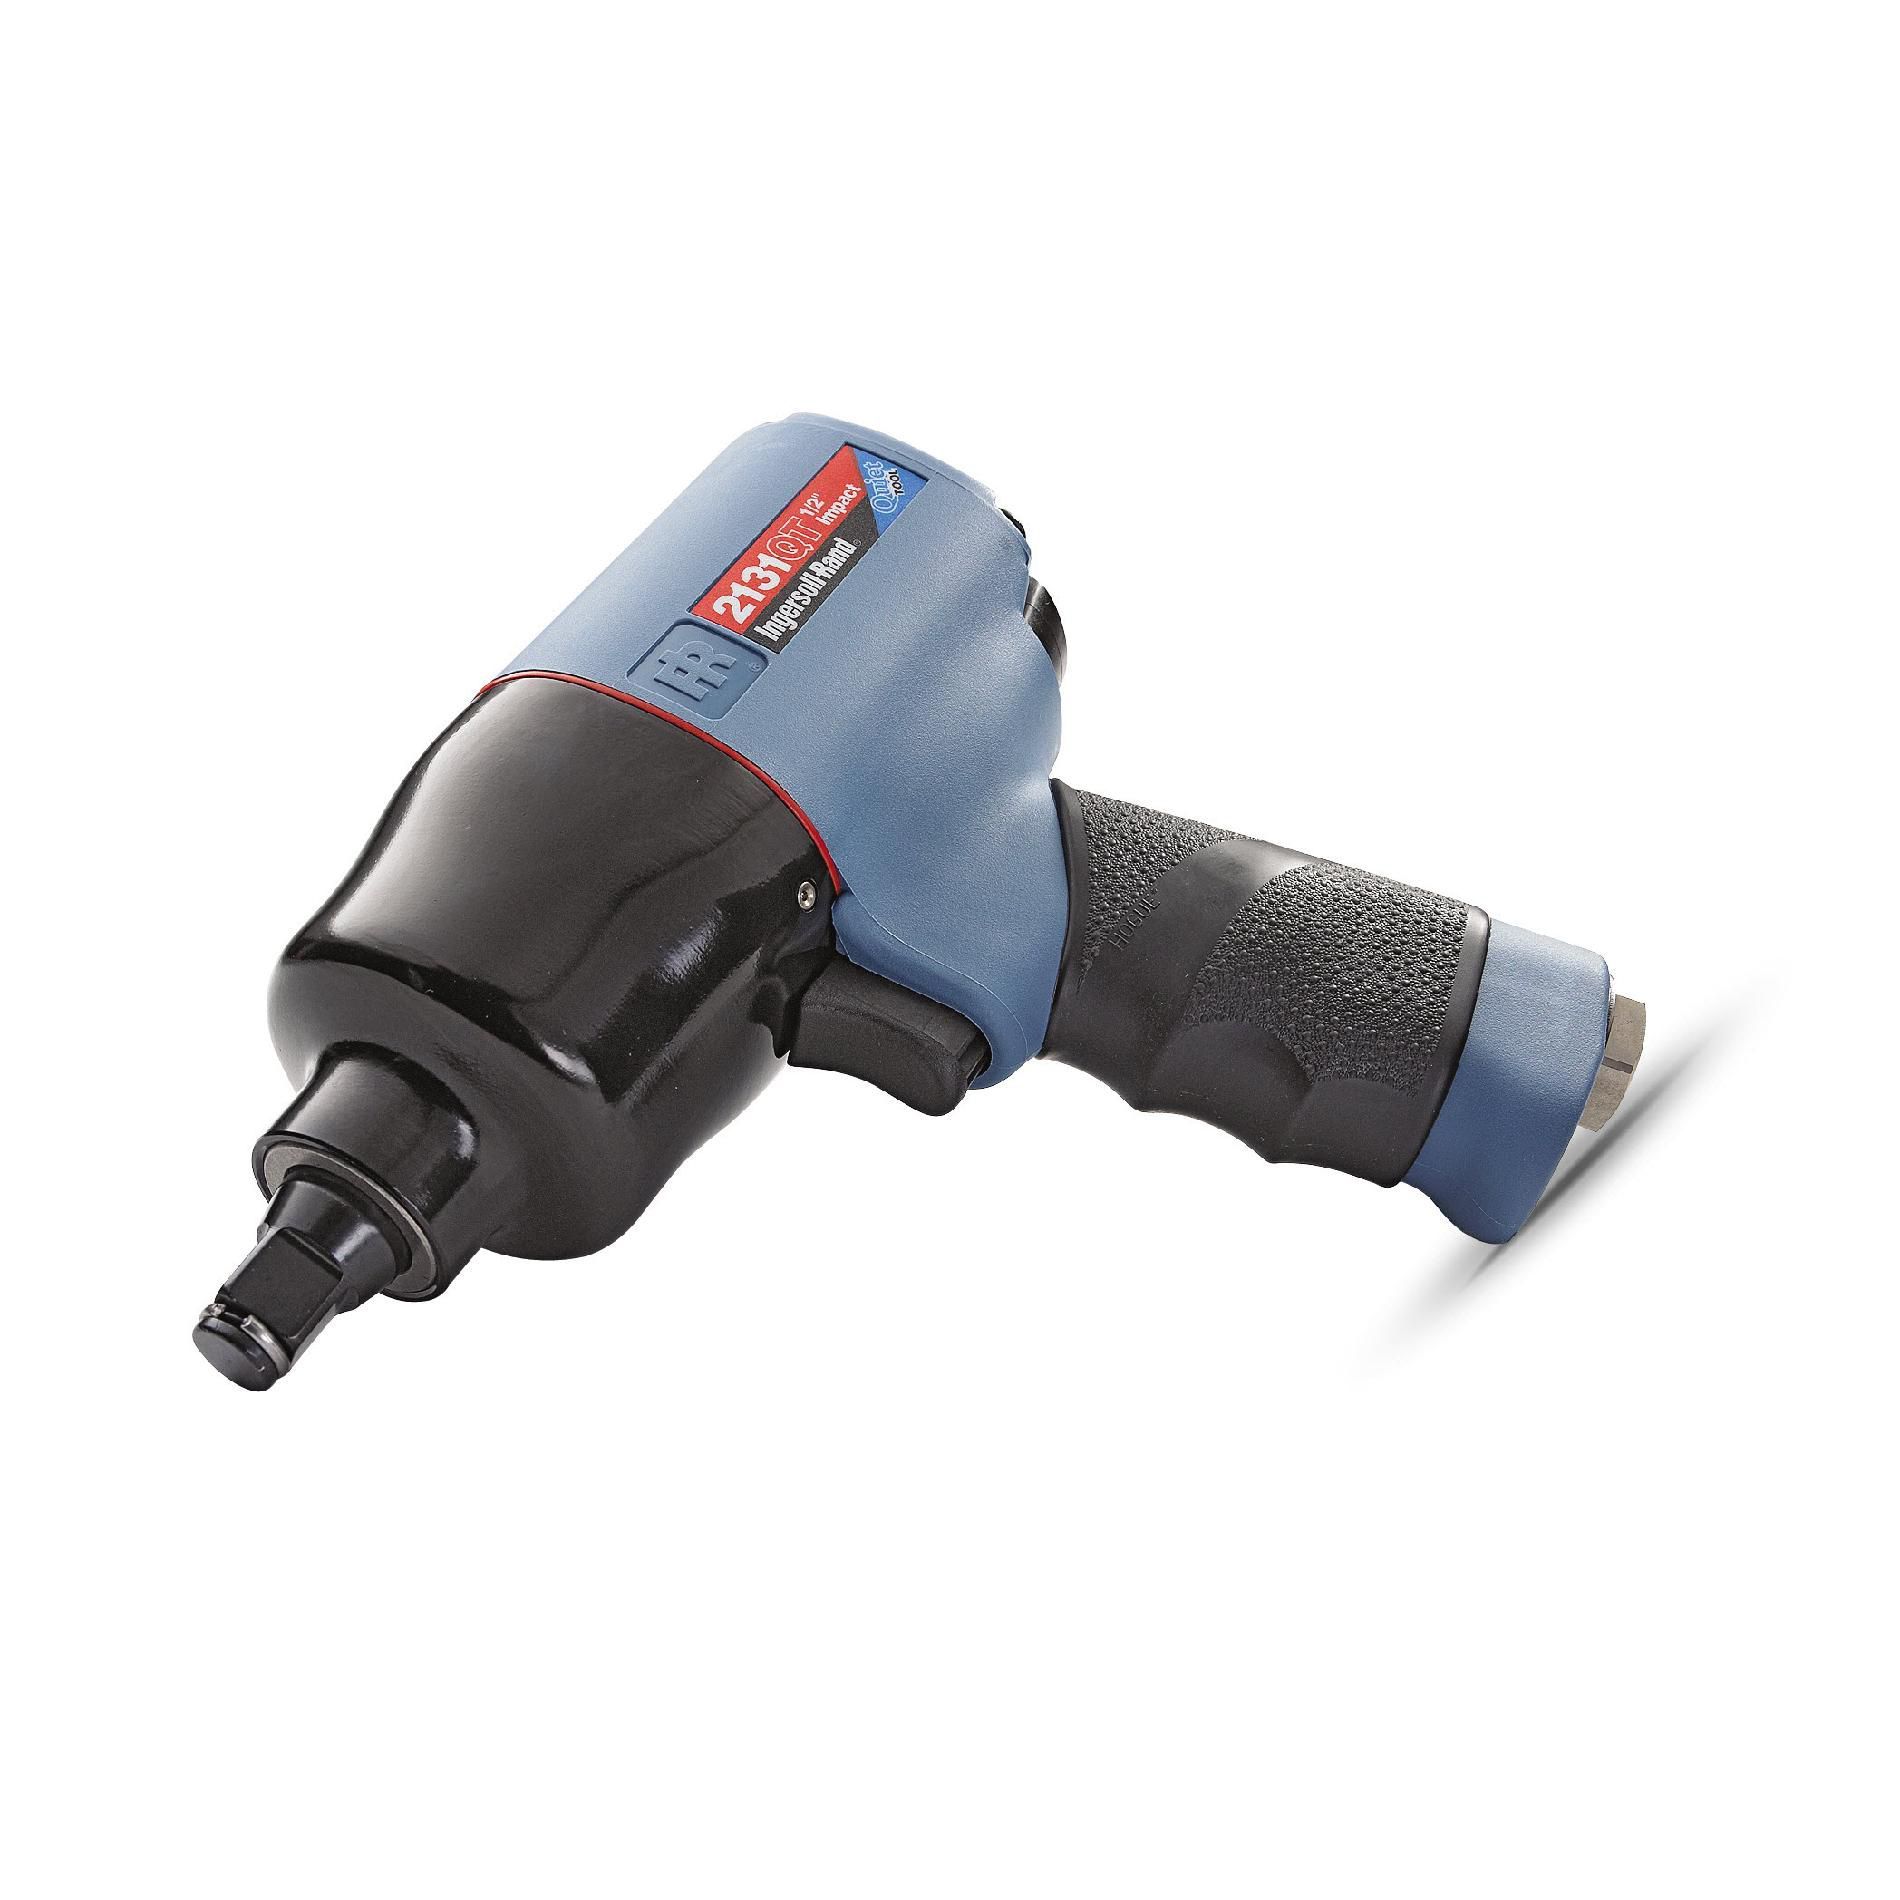 Ingersoll-Rand 1/2 in. Quiet Impact Wrench